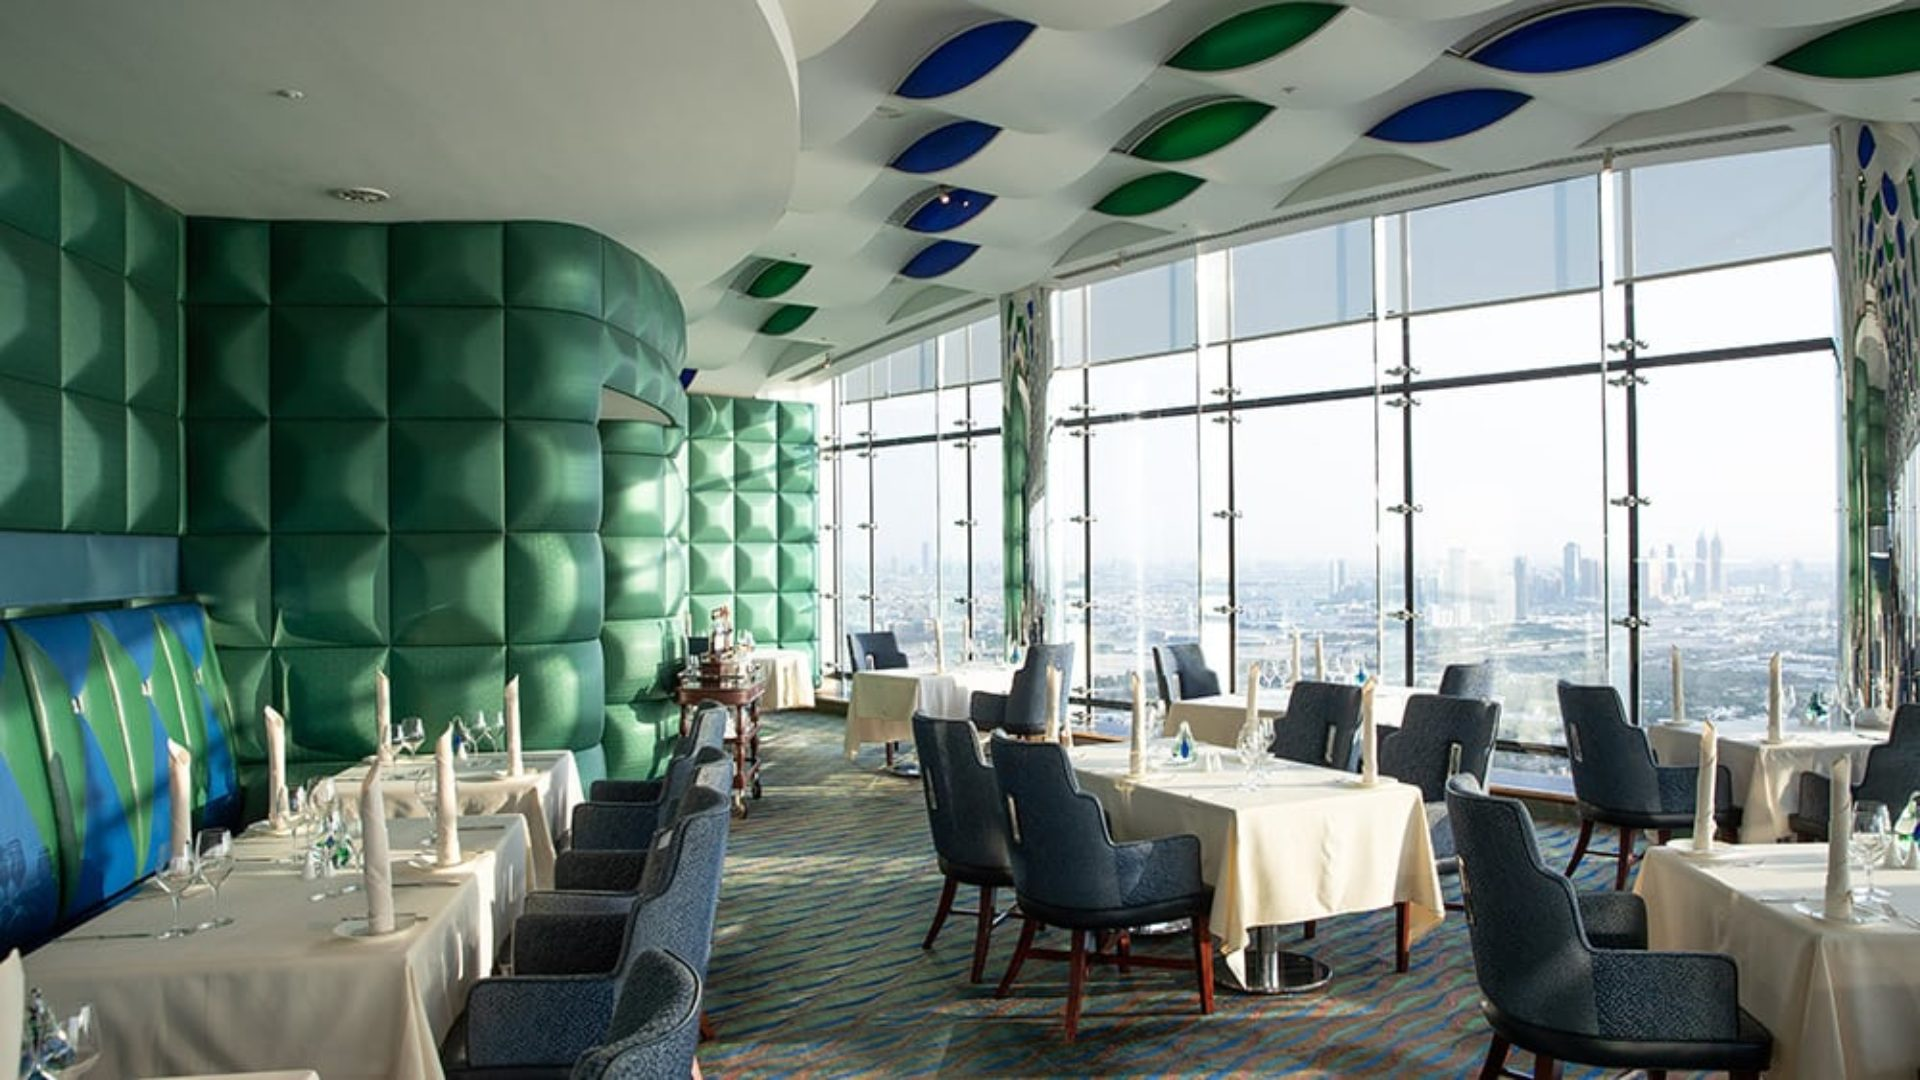 Al Muntaha Restaurant with a sea view at the Burj Al Arab